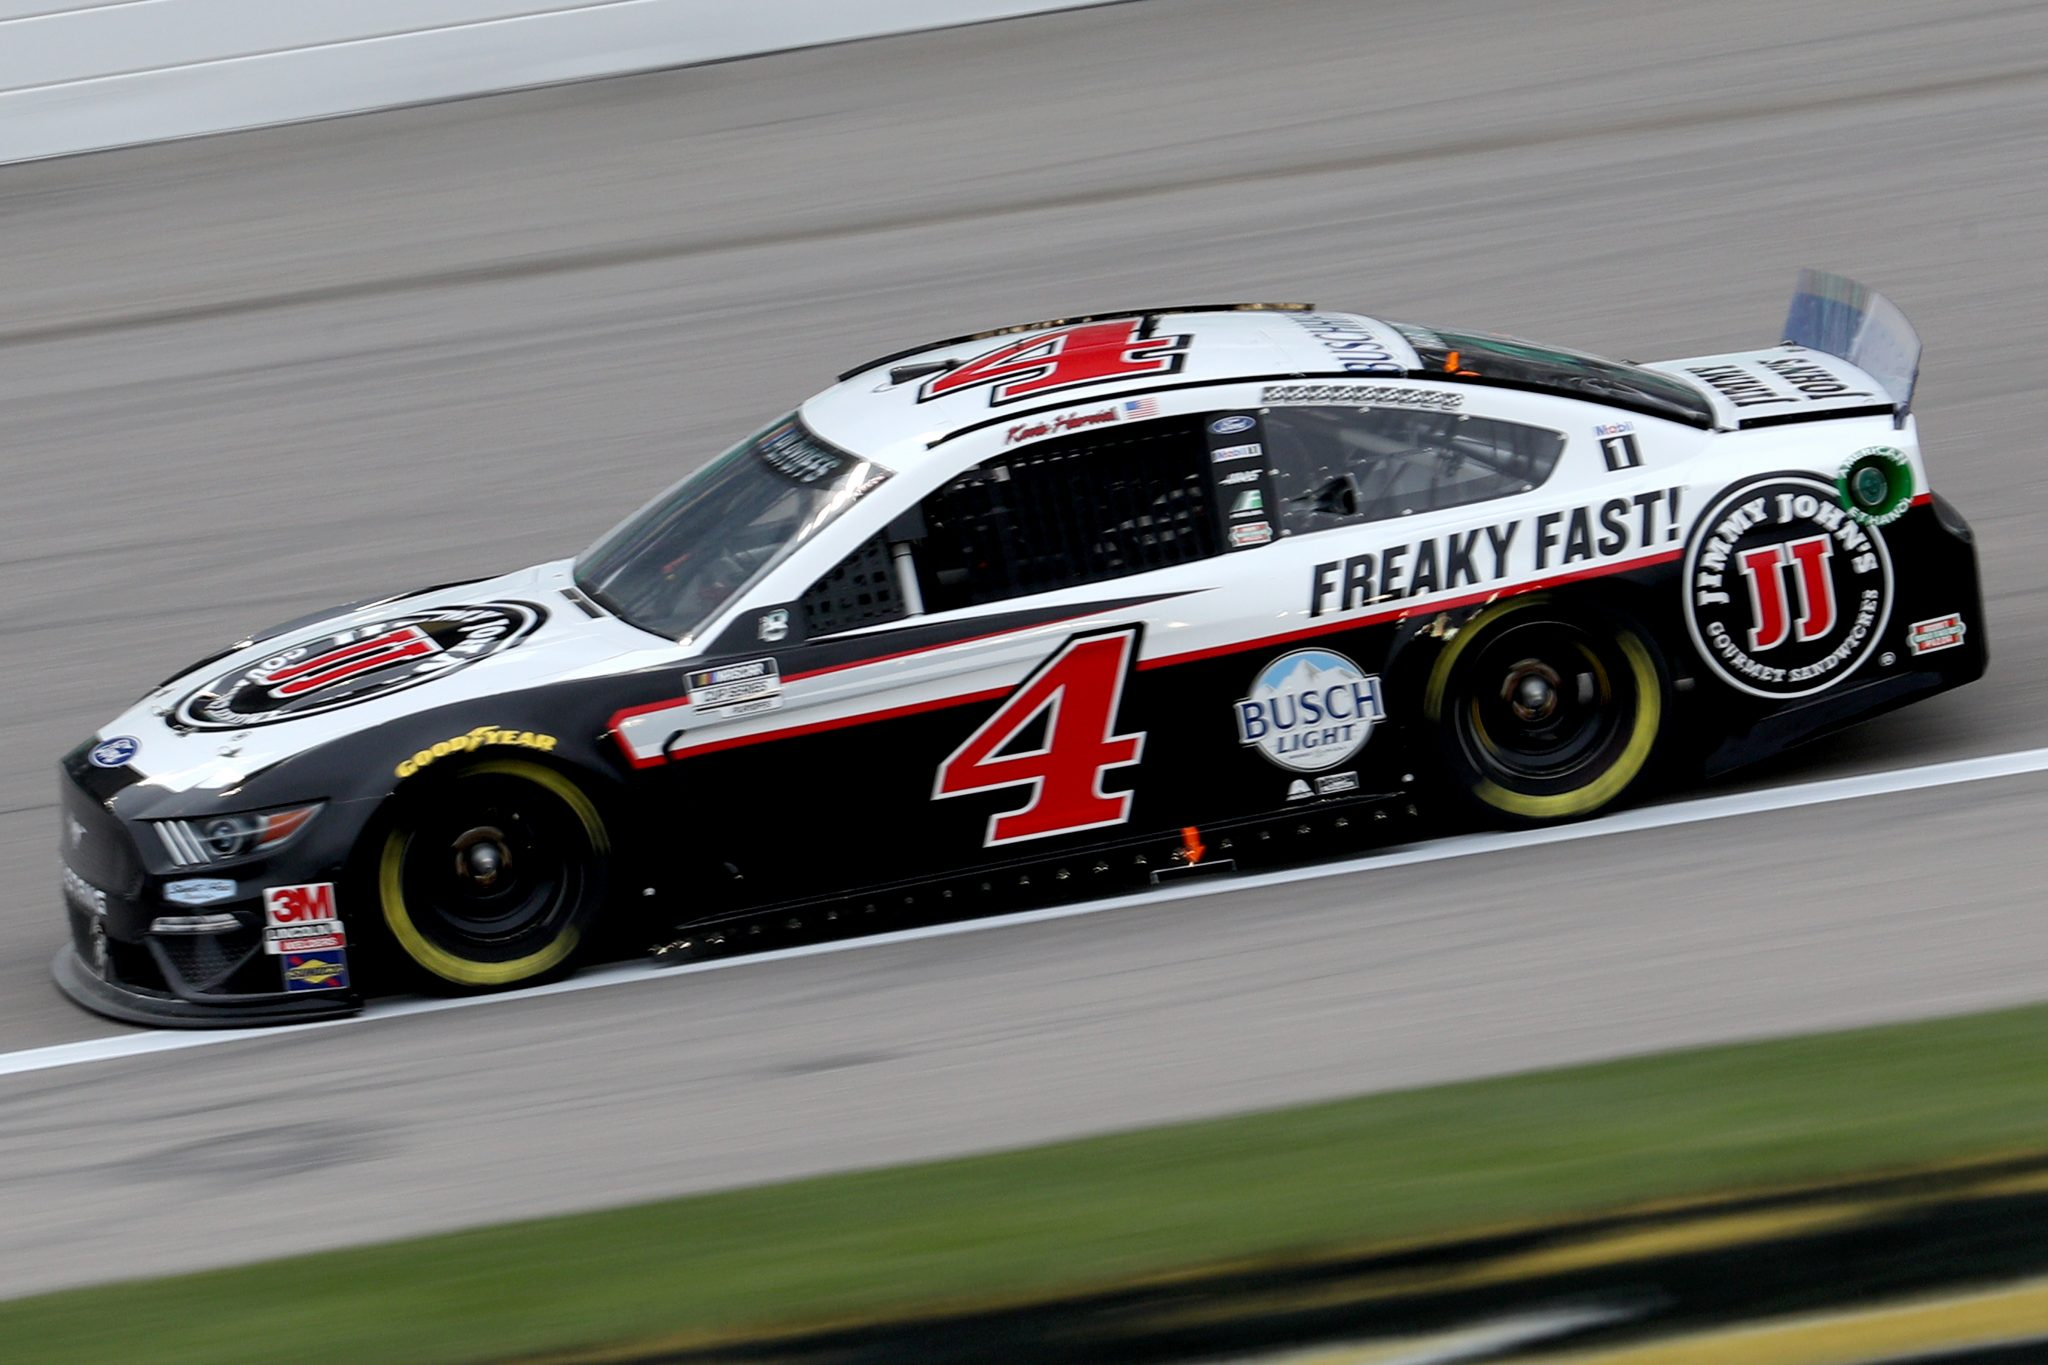 KANSAS CITY, KANSAS - OCTOBER 18: Kevin Harvick, driver of the #4 Jimmy John's Ford, drives during the NASCAR Cup Series Hollywood Casino 400 at Kansas Speedway on October 18, 2020 in Kansas City, Kansas. (Photo by Chris Graythen/Getty Images) | Getty Images